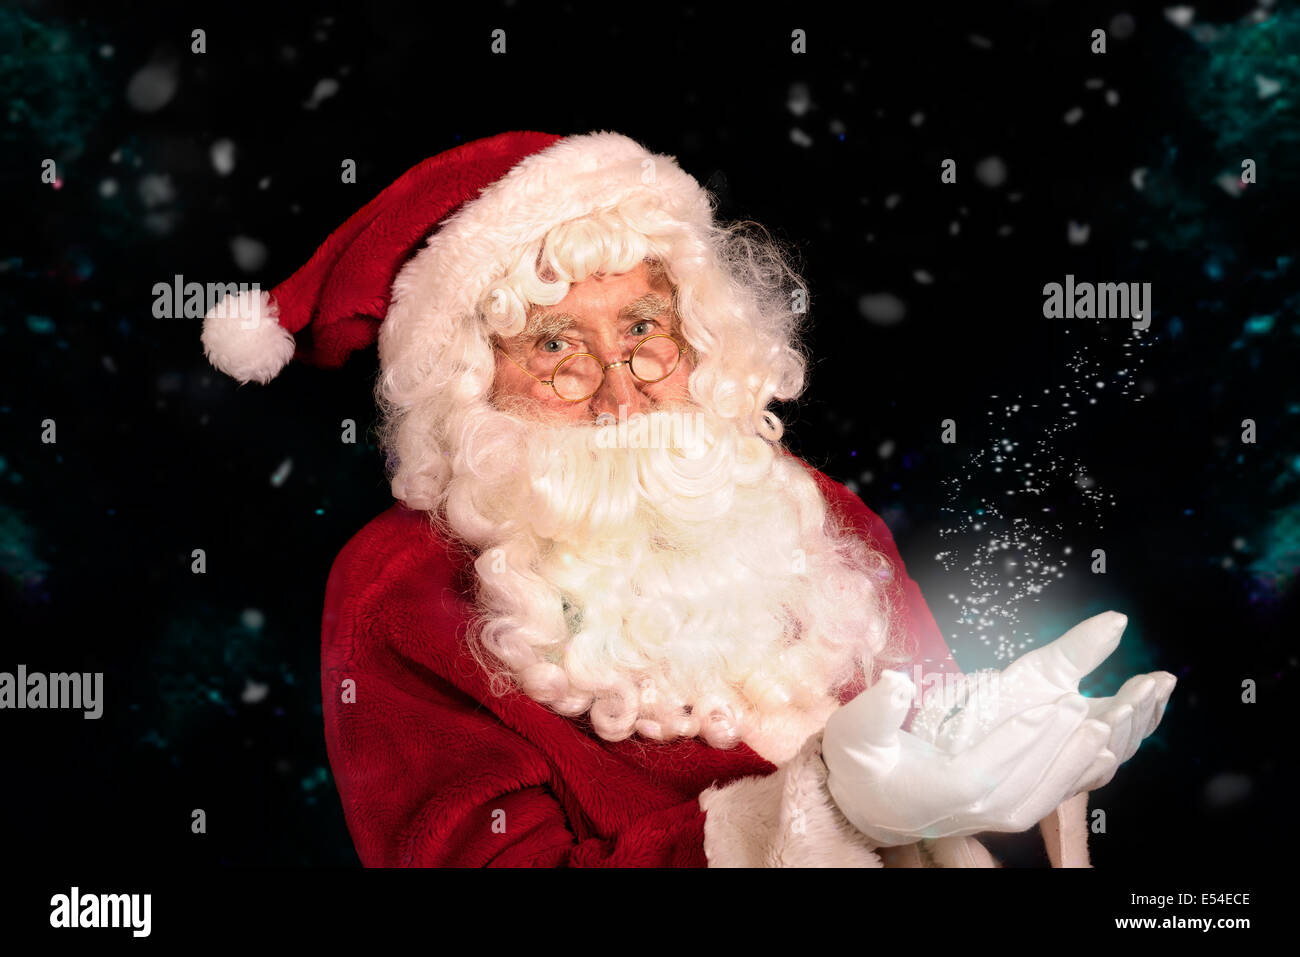 Santa Claus in magical setting - Stock Image